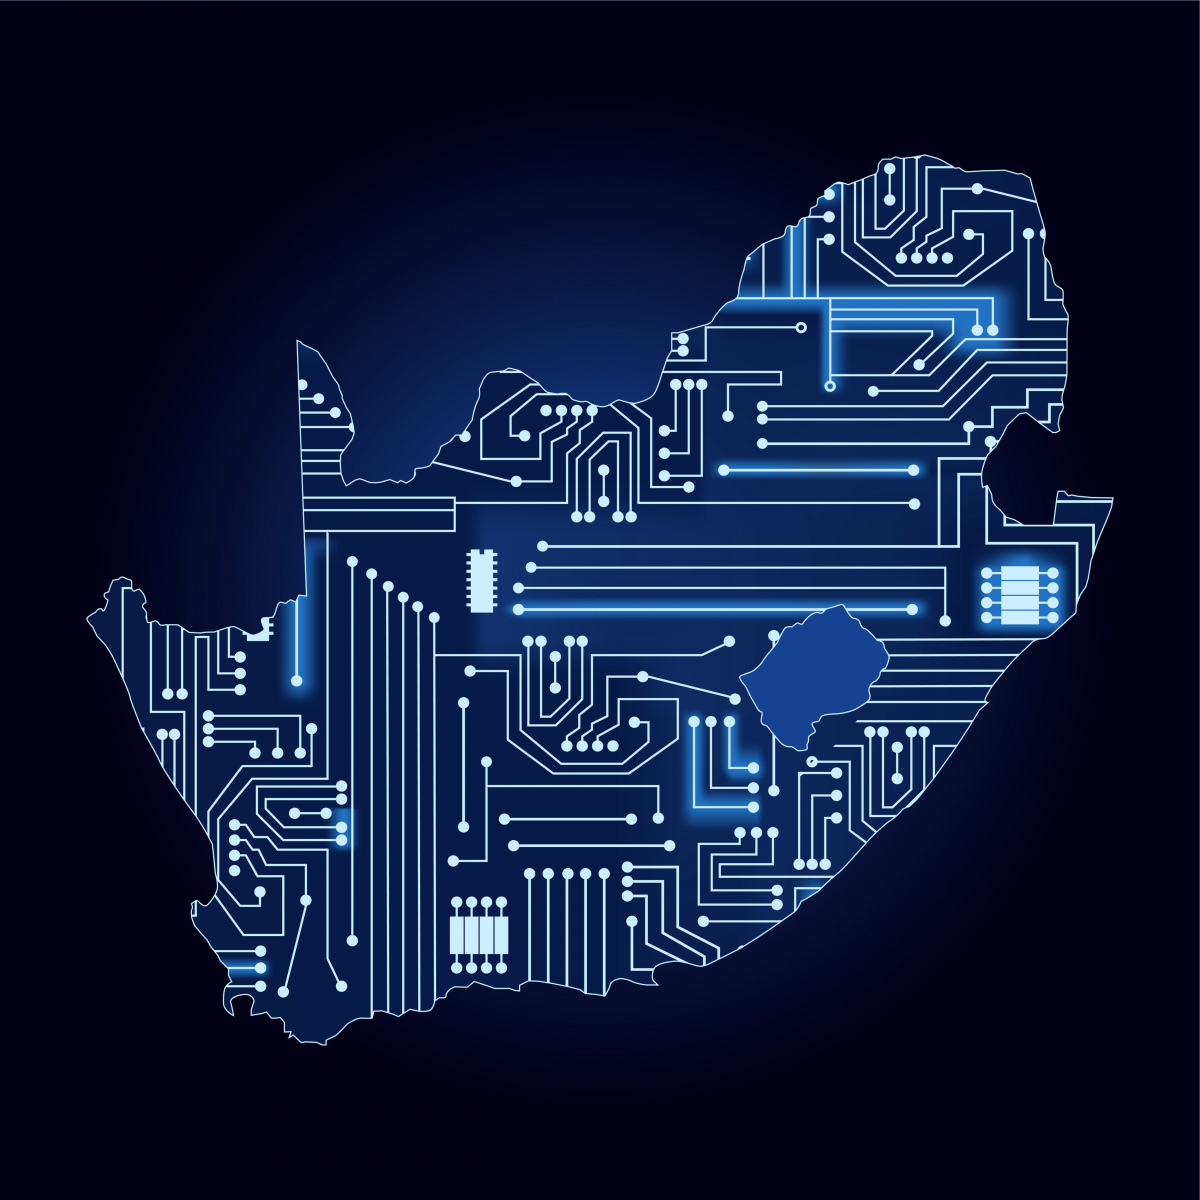 A map of South Africa with an electronic circuit imposed to represent technology.